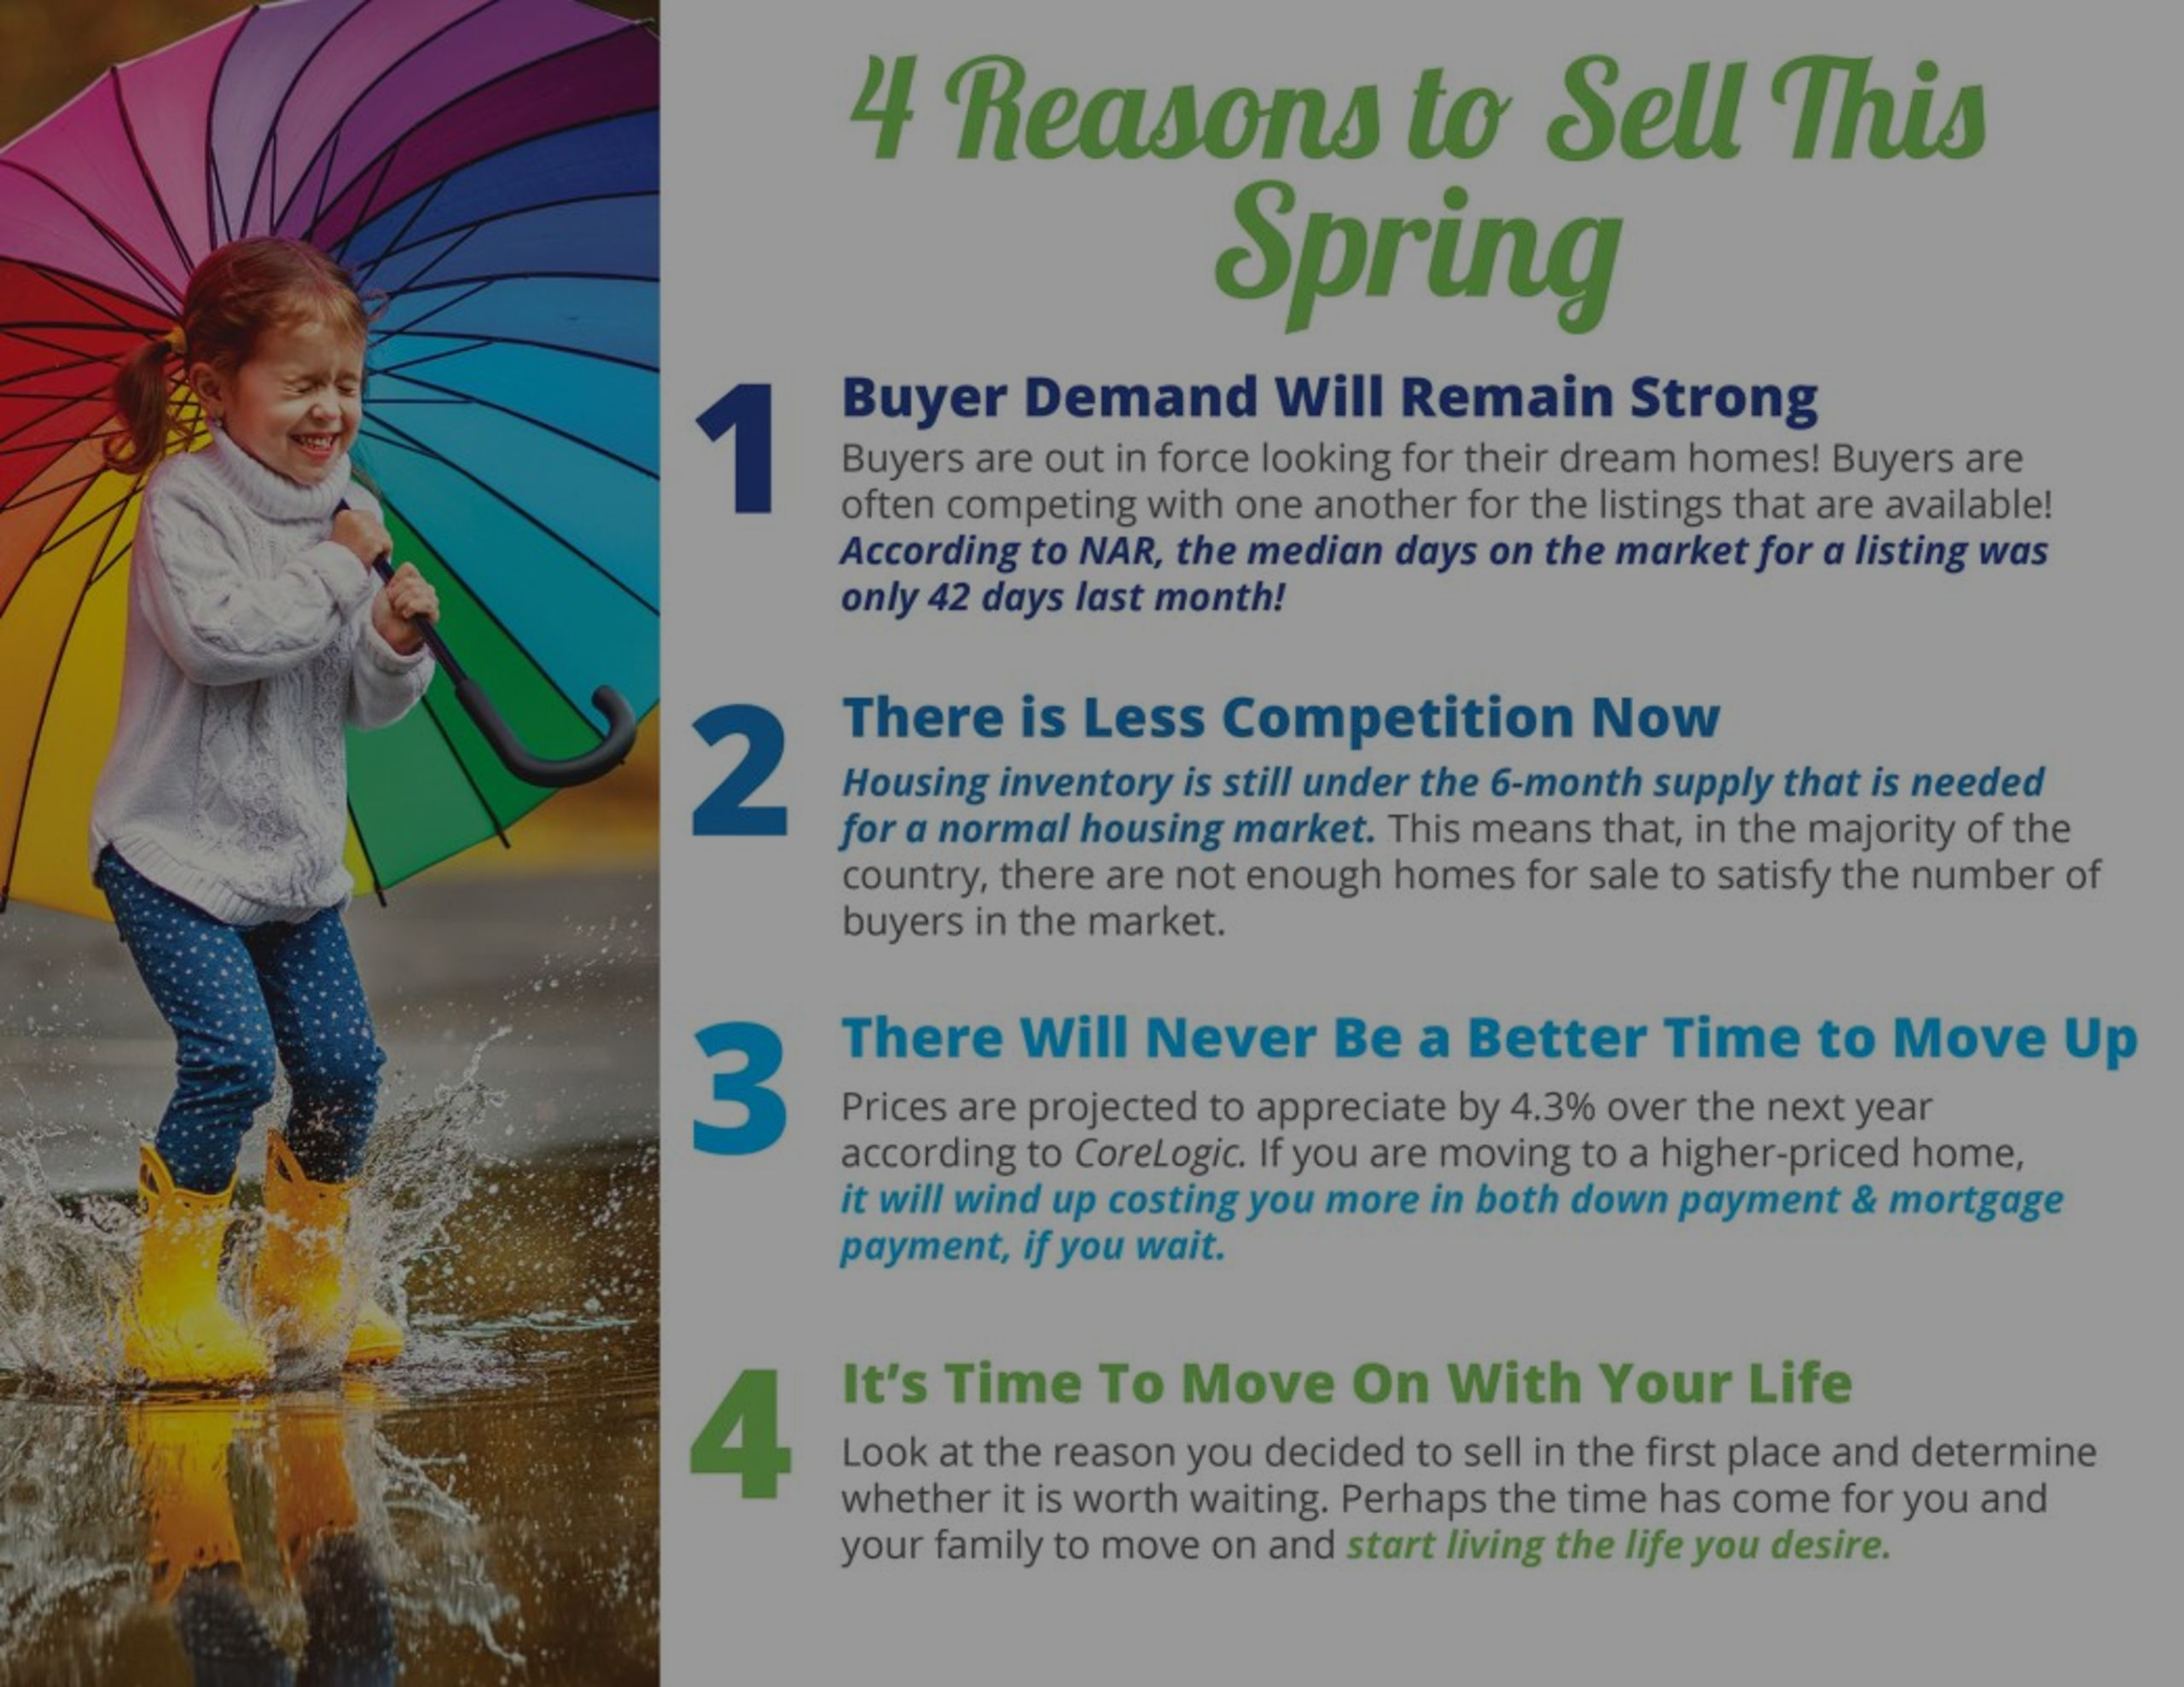 4 Reasons to Sell This Spring